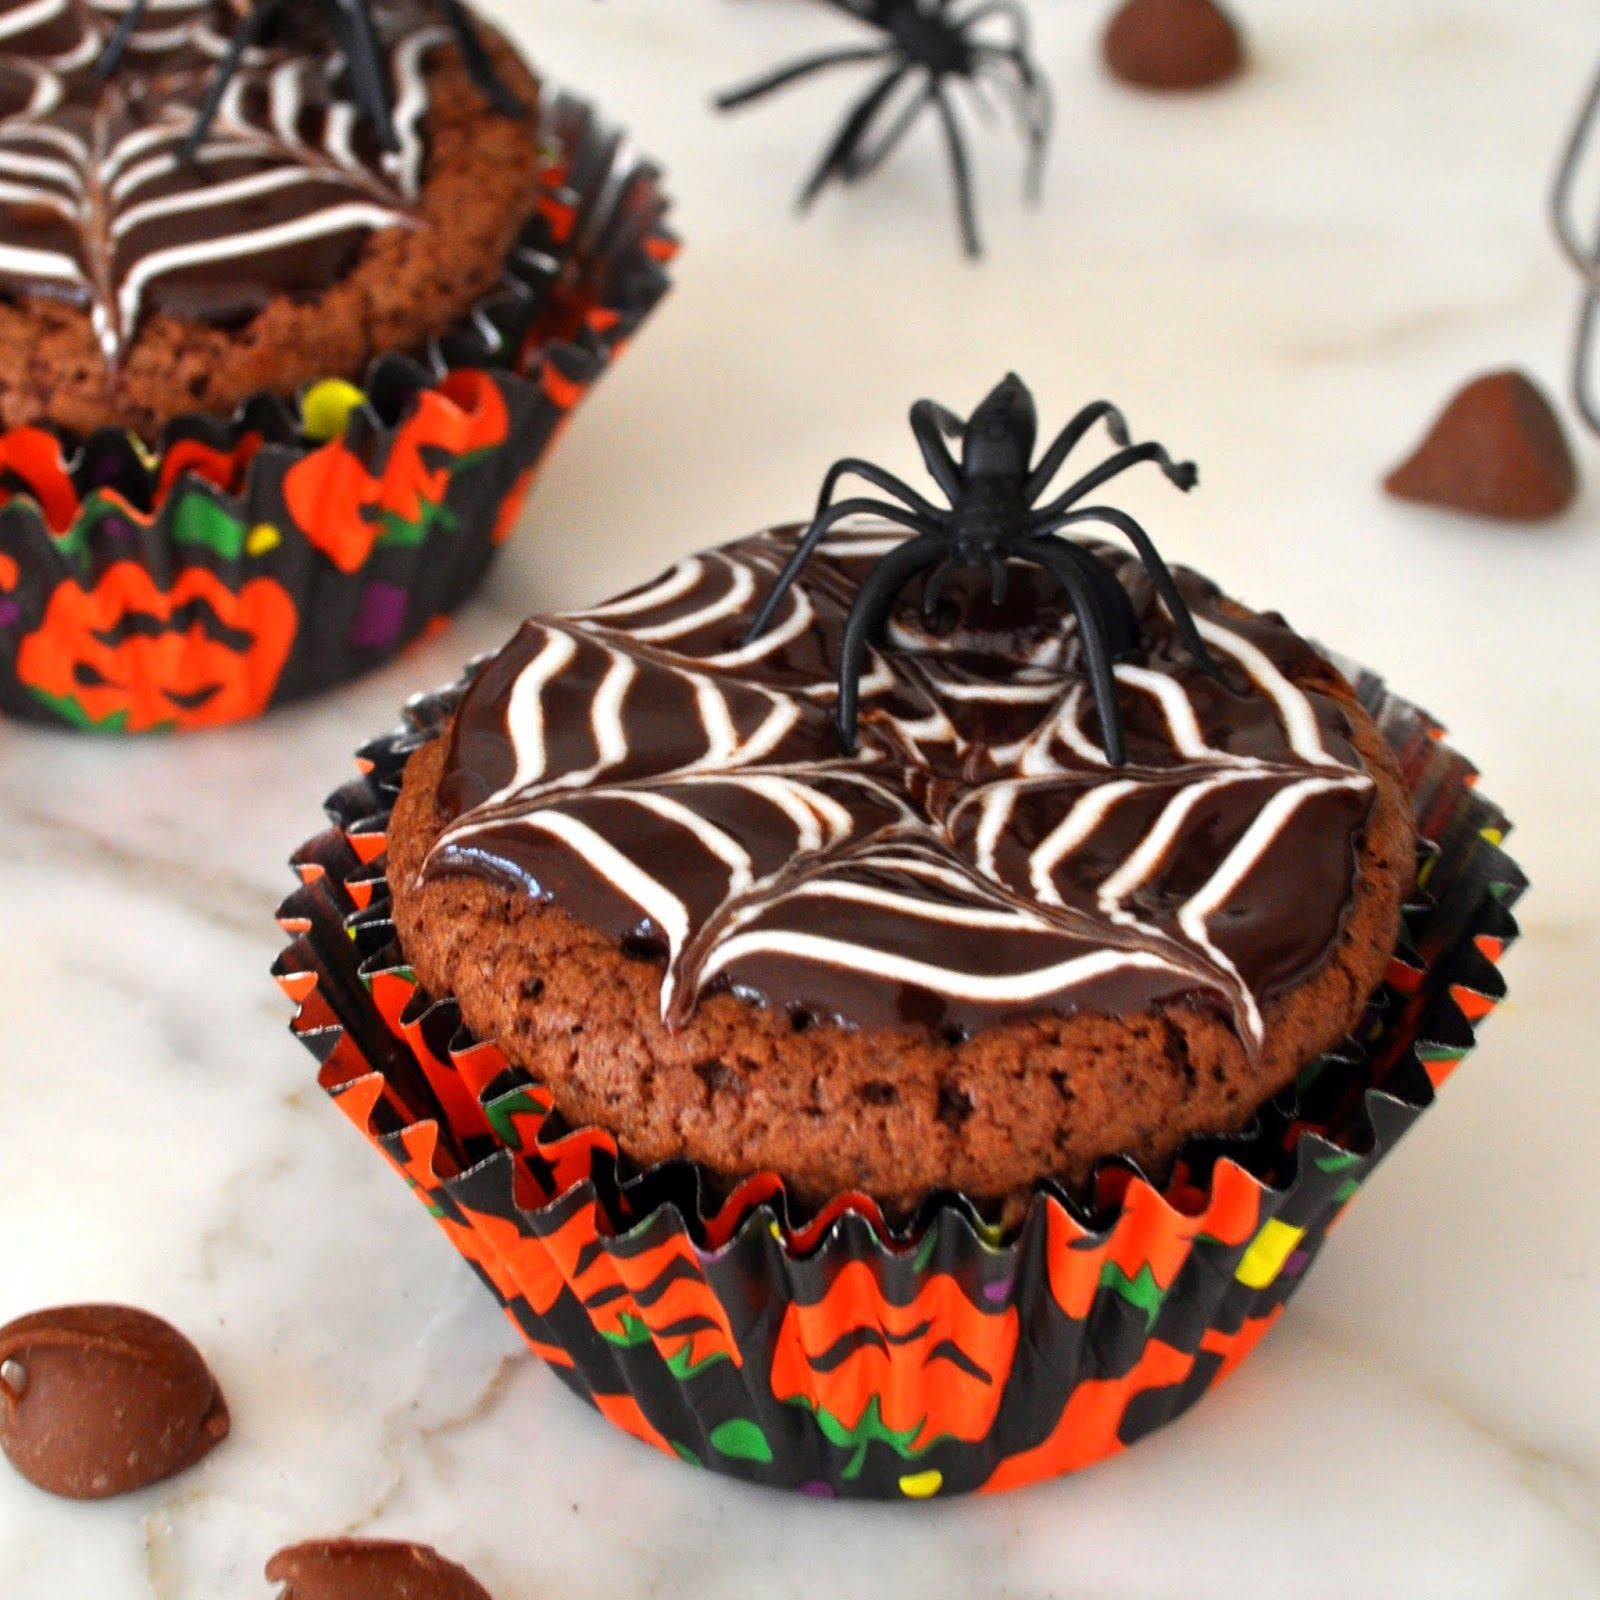 Cooking with Manuela: Homemade Halloween Brownie Cupcakes Recipe